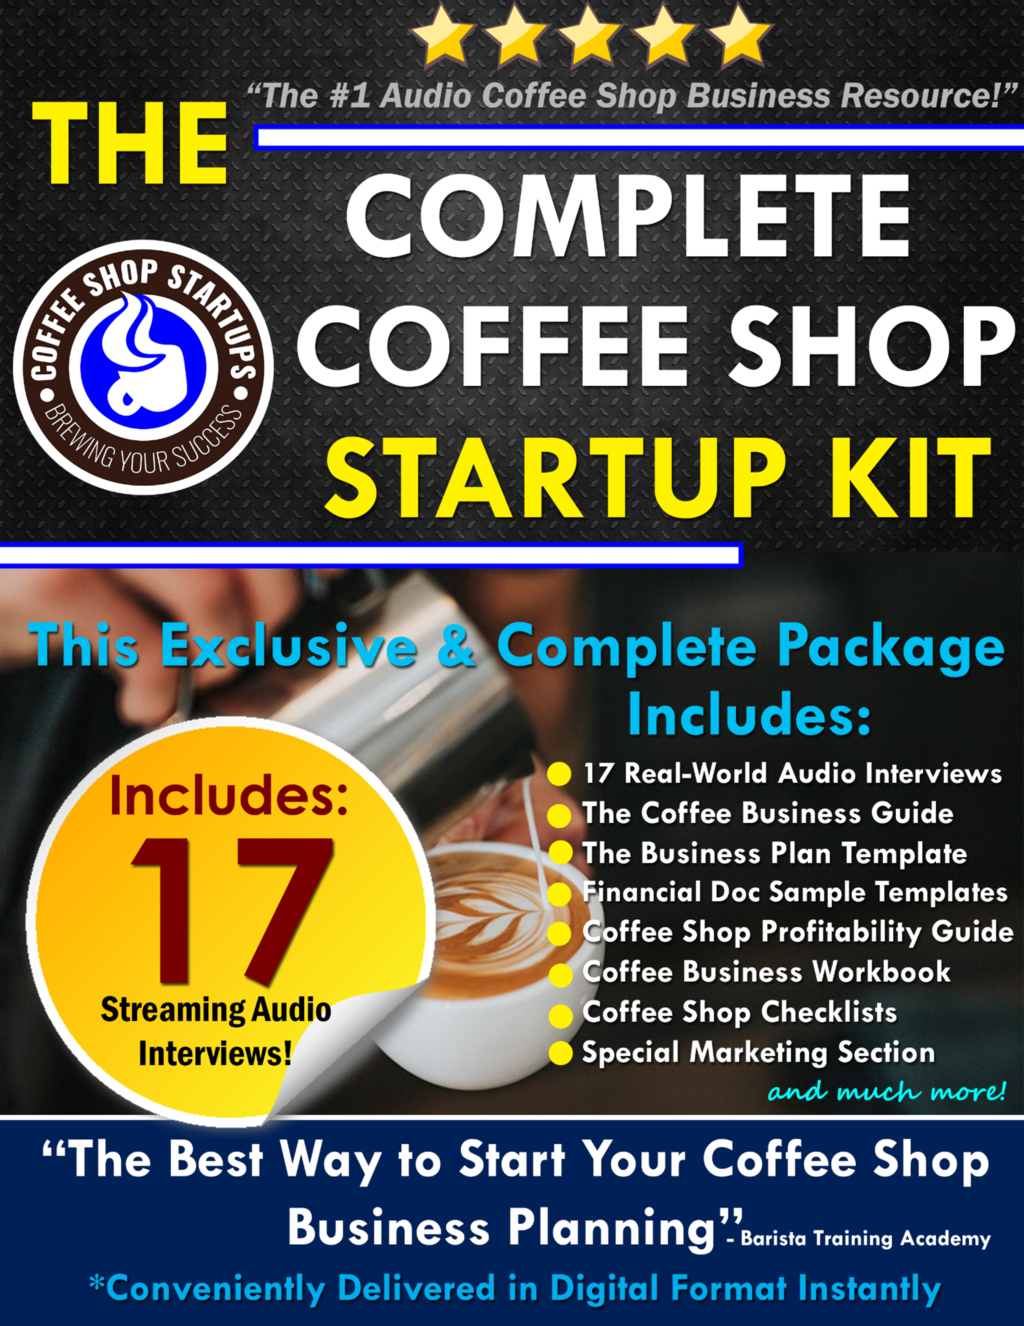 Before Starting Your Coffee Shop: Plan Your Sample Budget